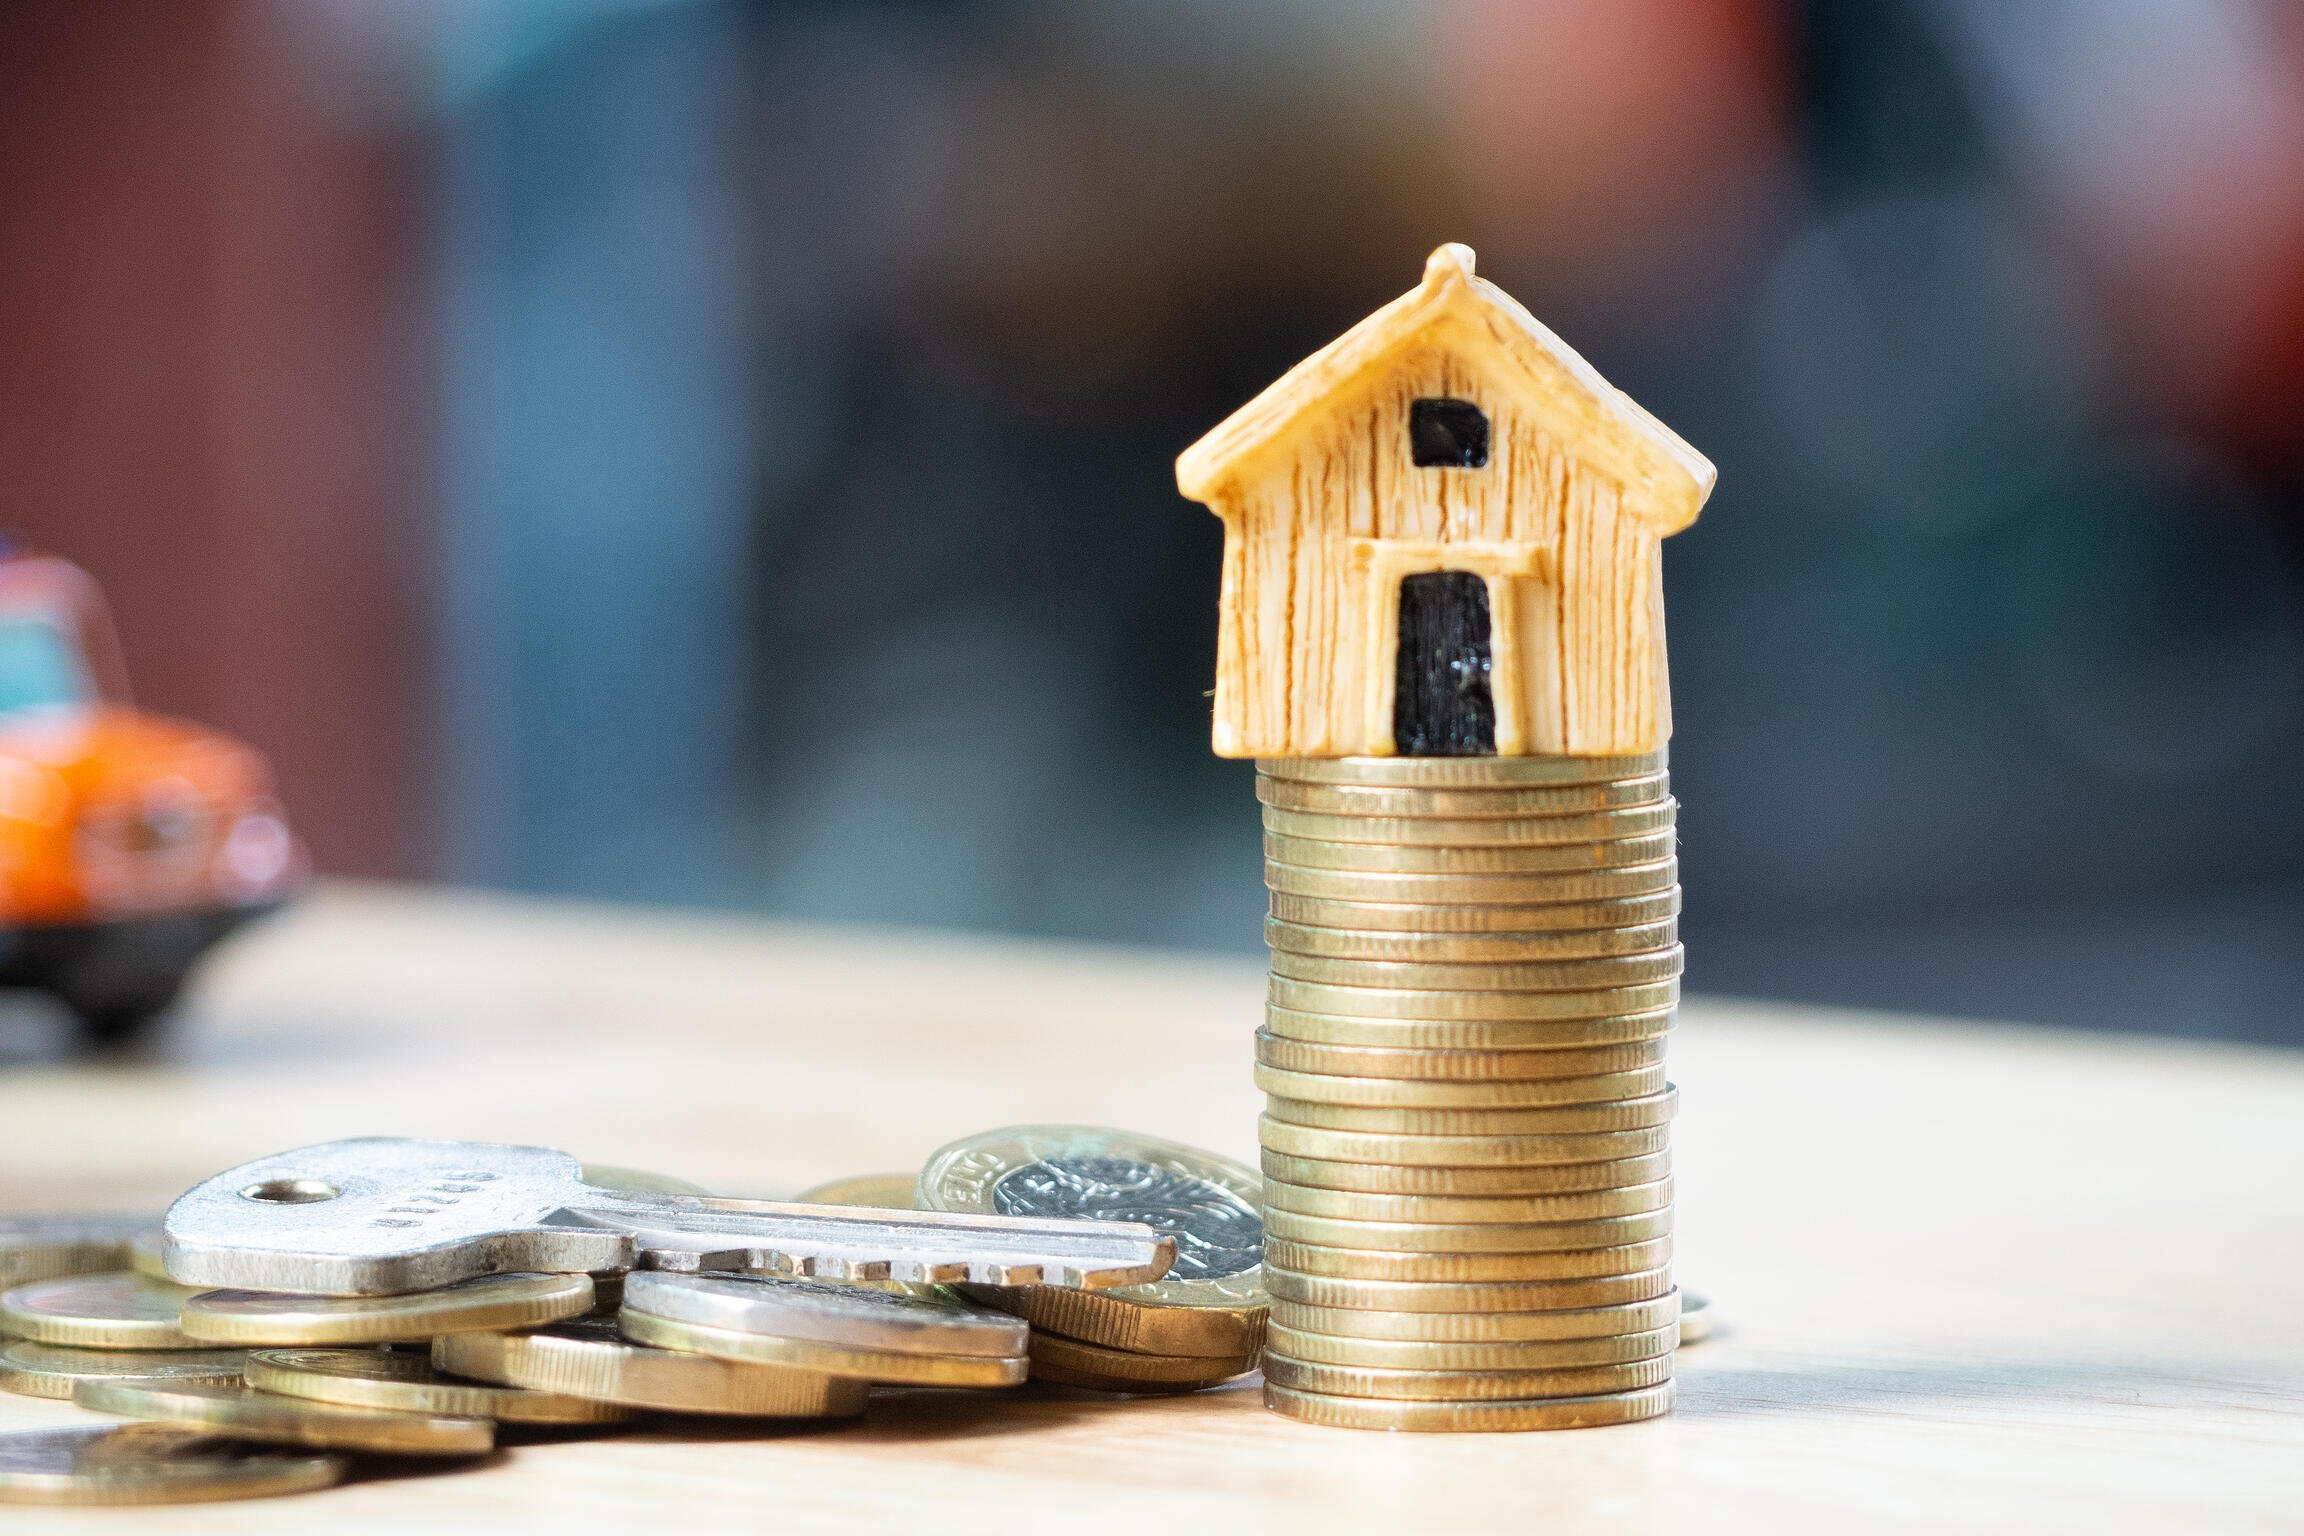 House or Home model on near of coins stack with home key. Concept for loan, property ladder, financial, mortgage, real estate investment, taxes and bonus.